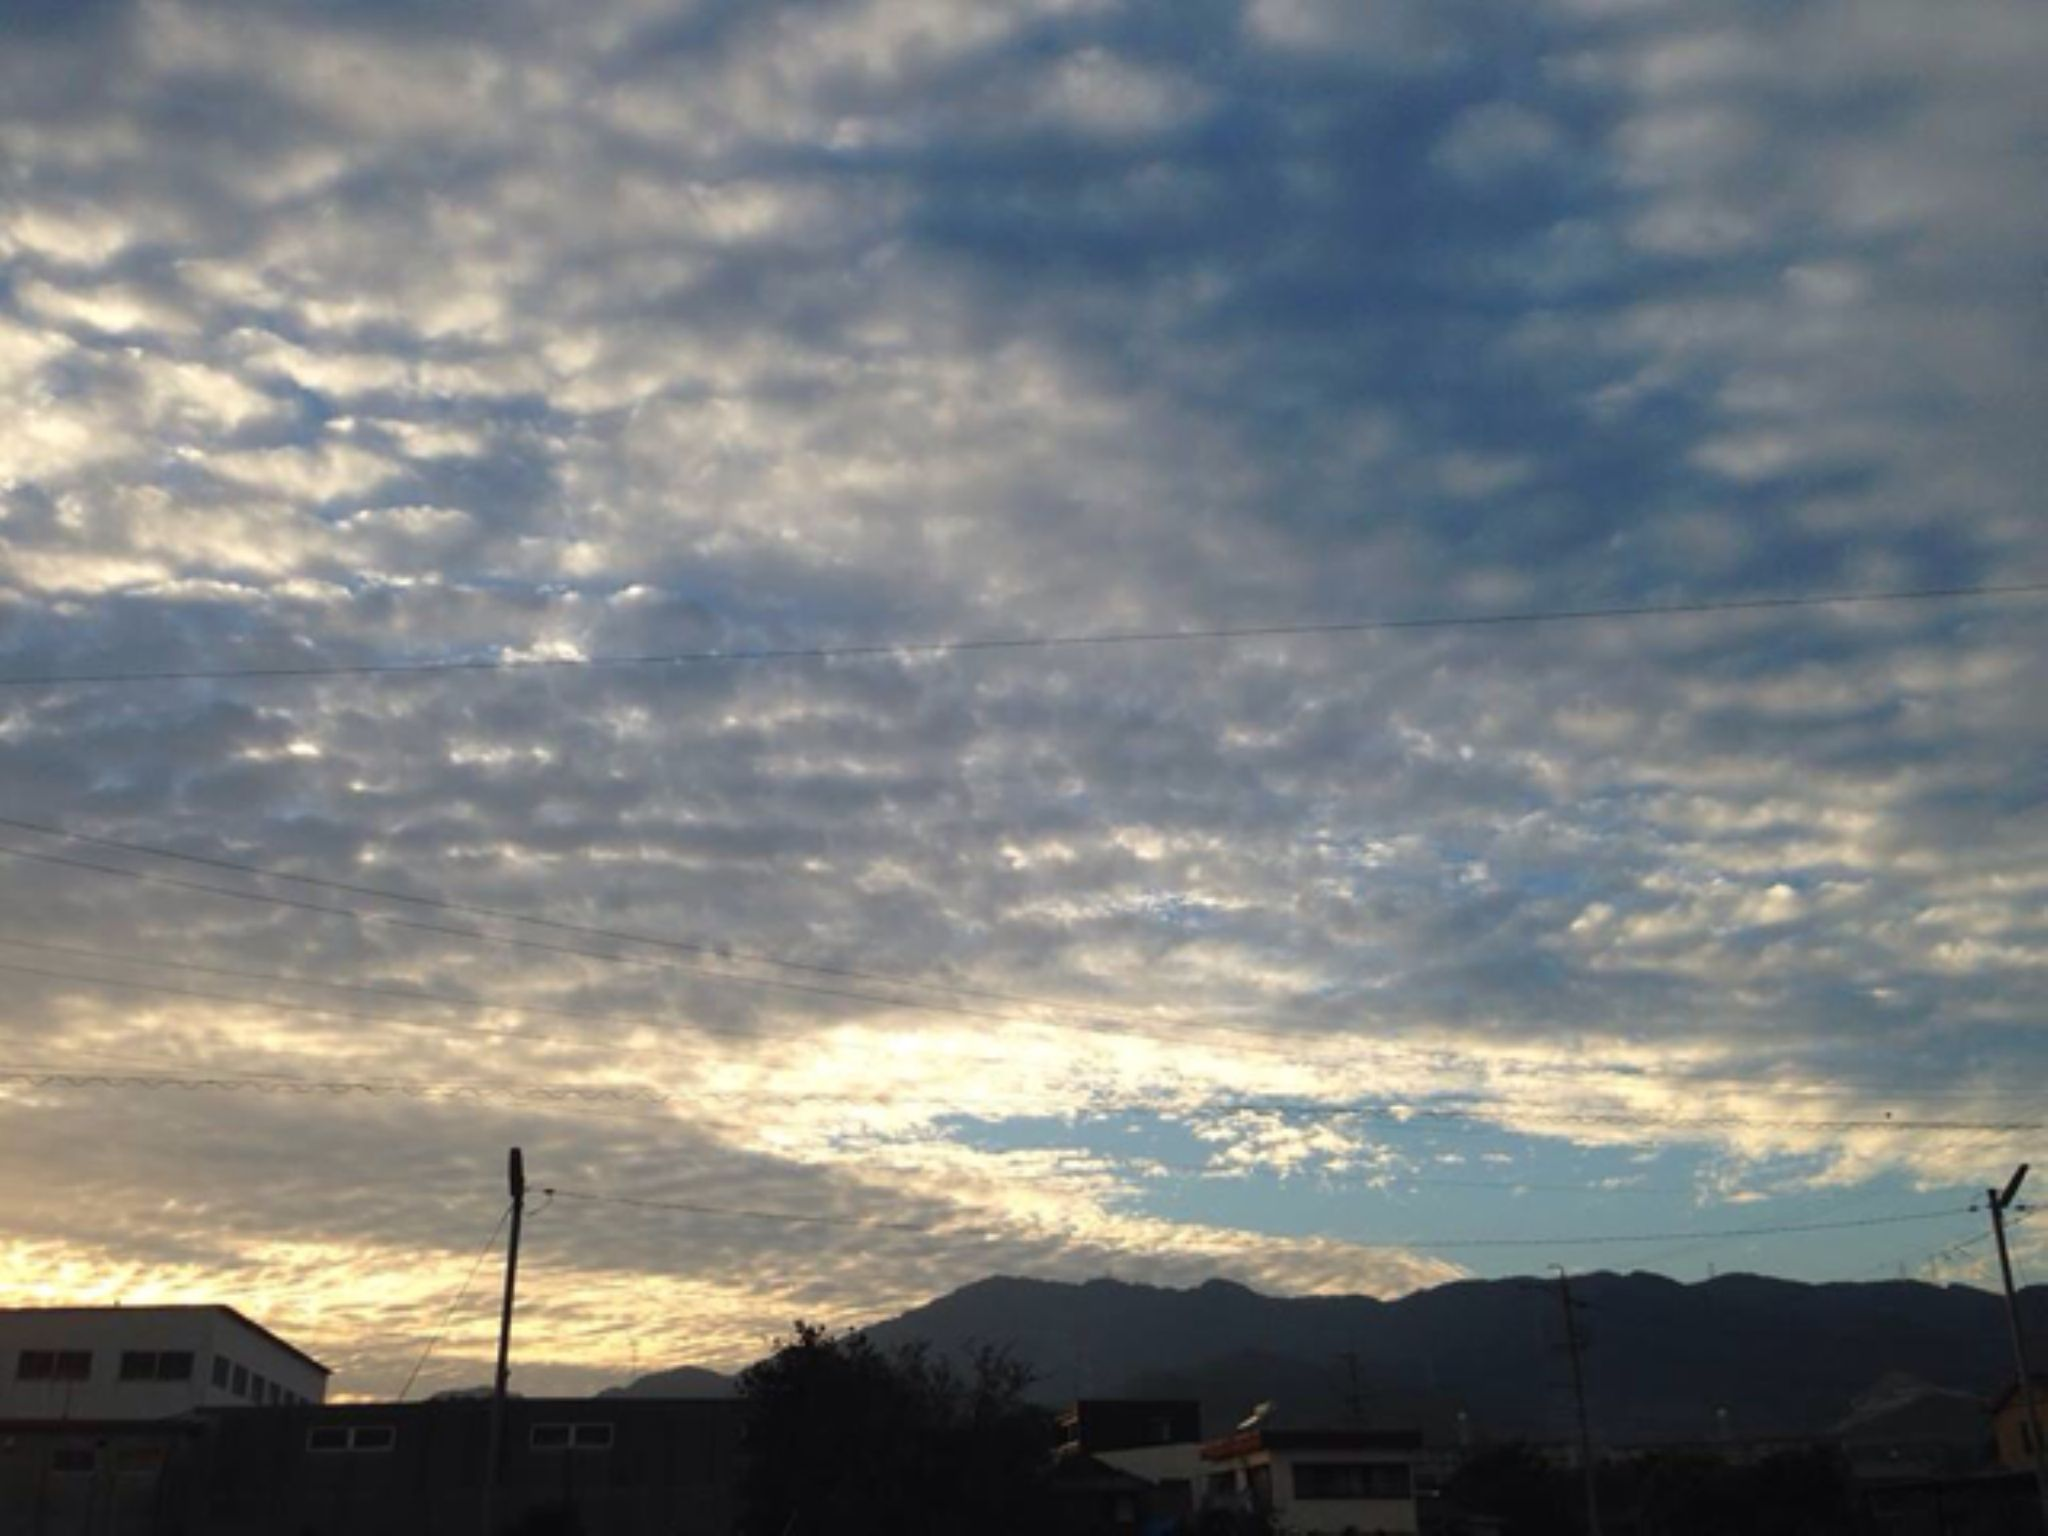 IMG_5482 by ale.recaldes